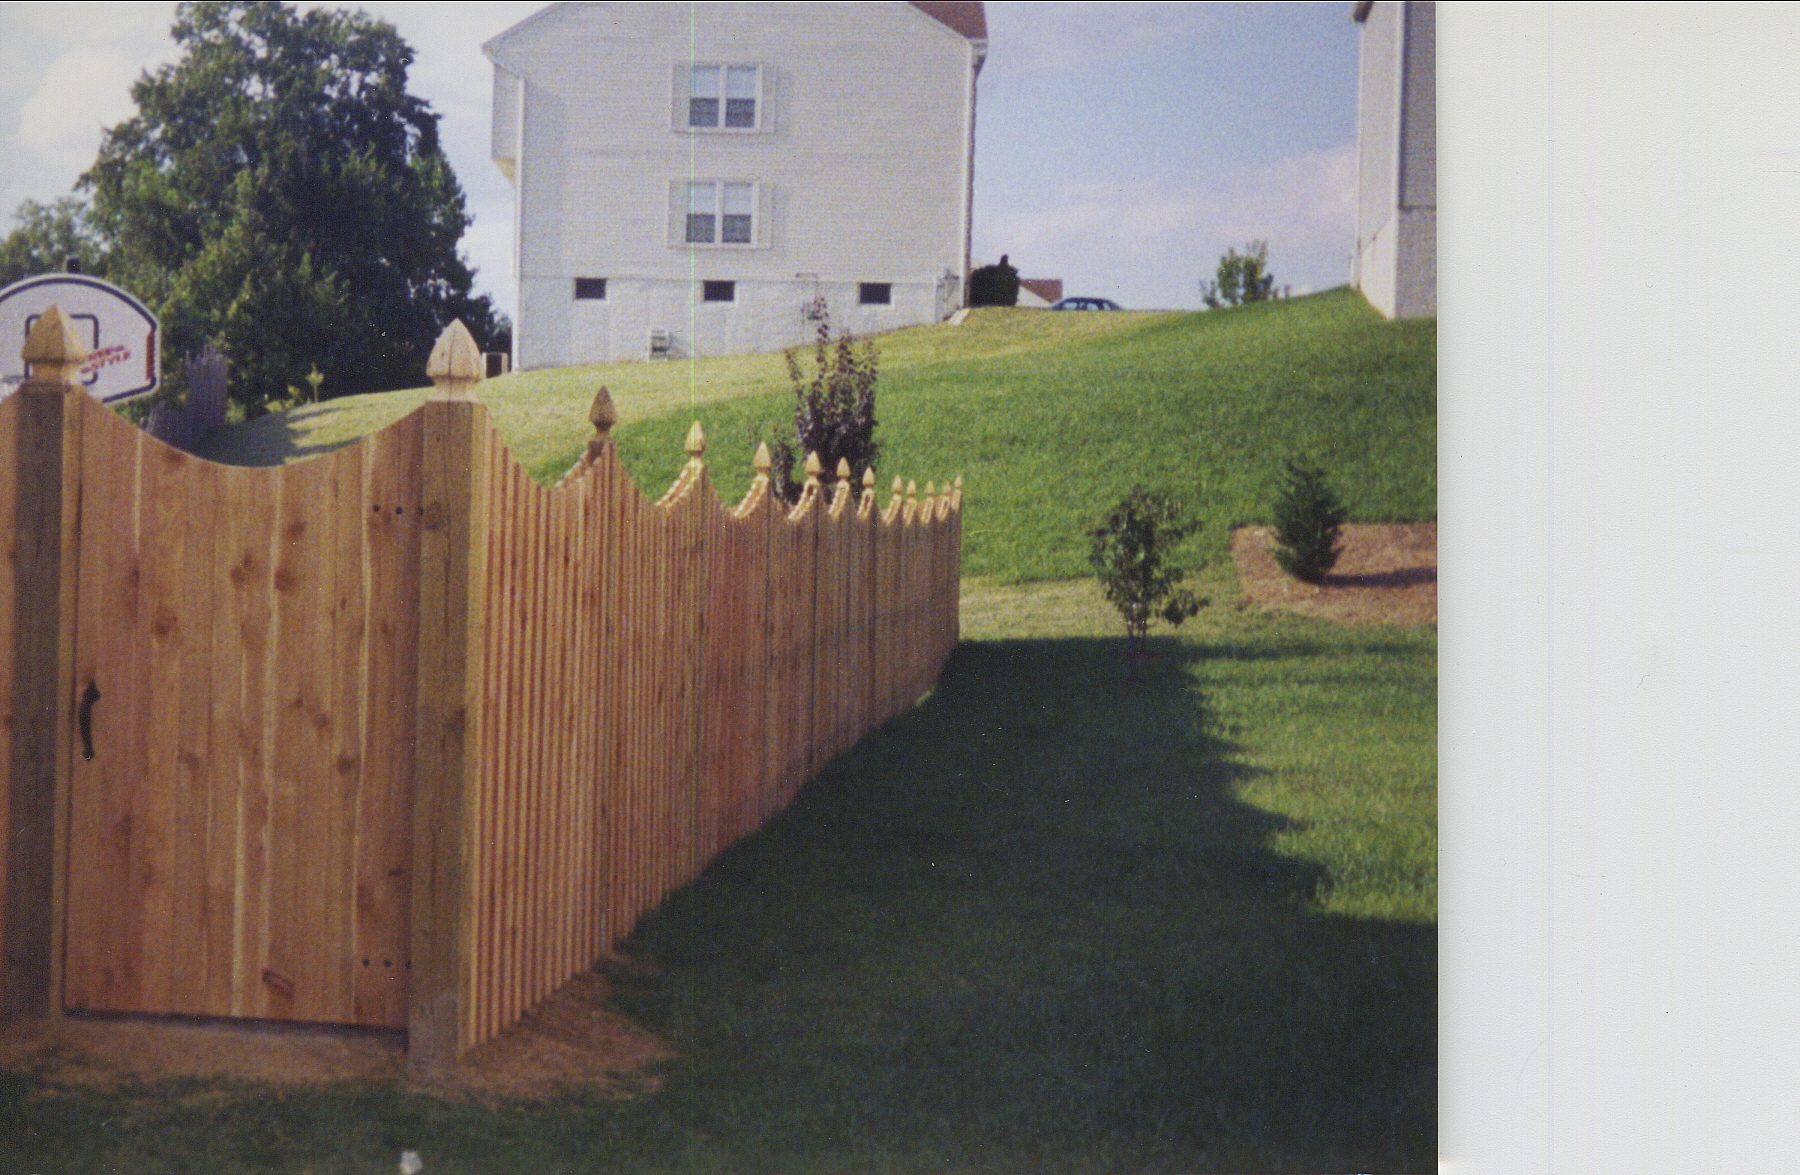 Crown Fence | Wood Scallop Fence